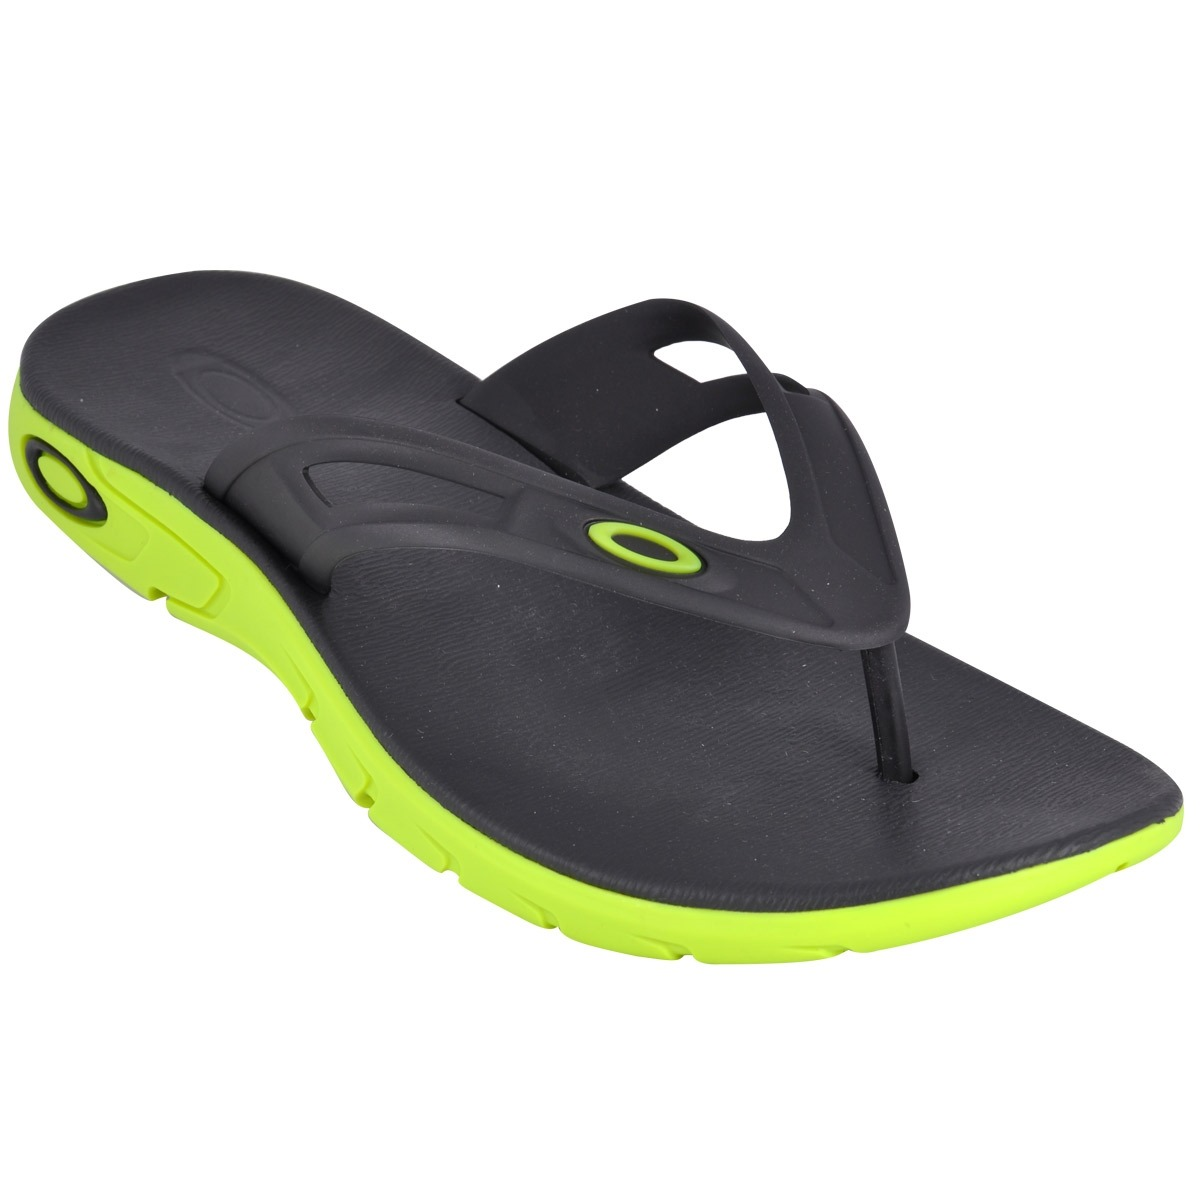 f79dc3ad8ab11 chinelo oakley rest preto e verde - cut wave. Carregando zoom.